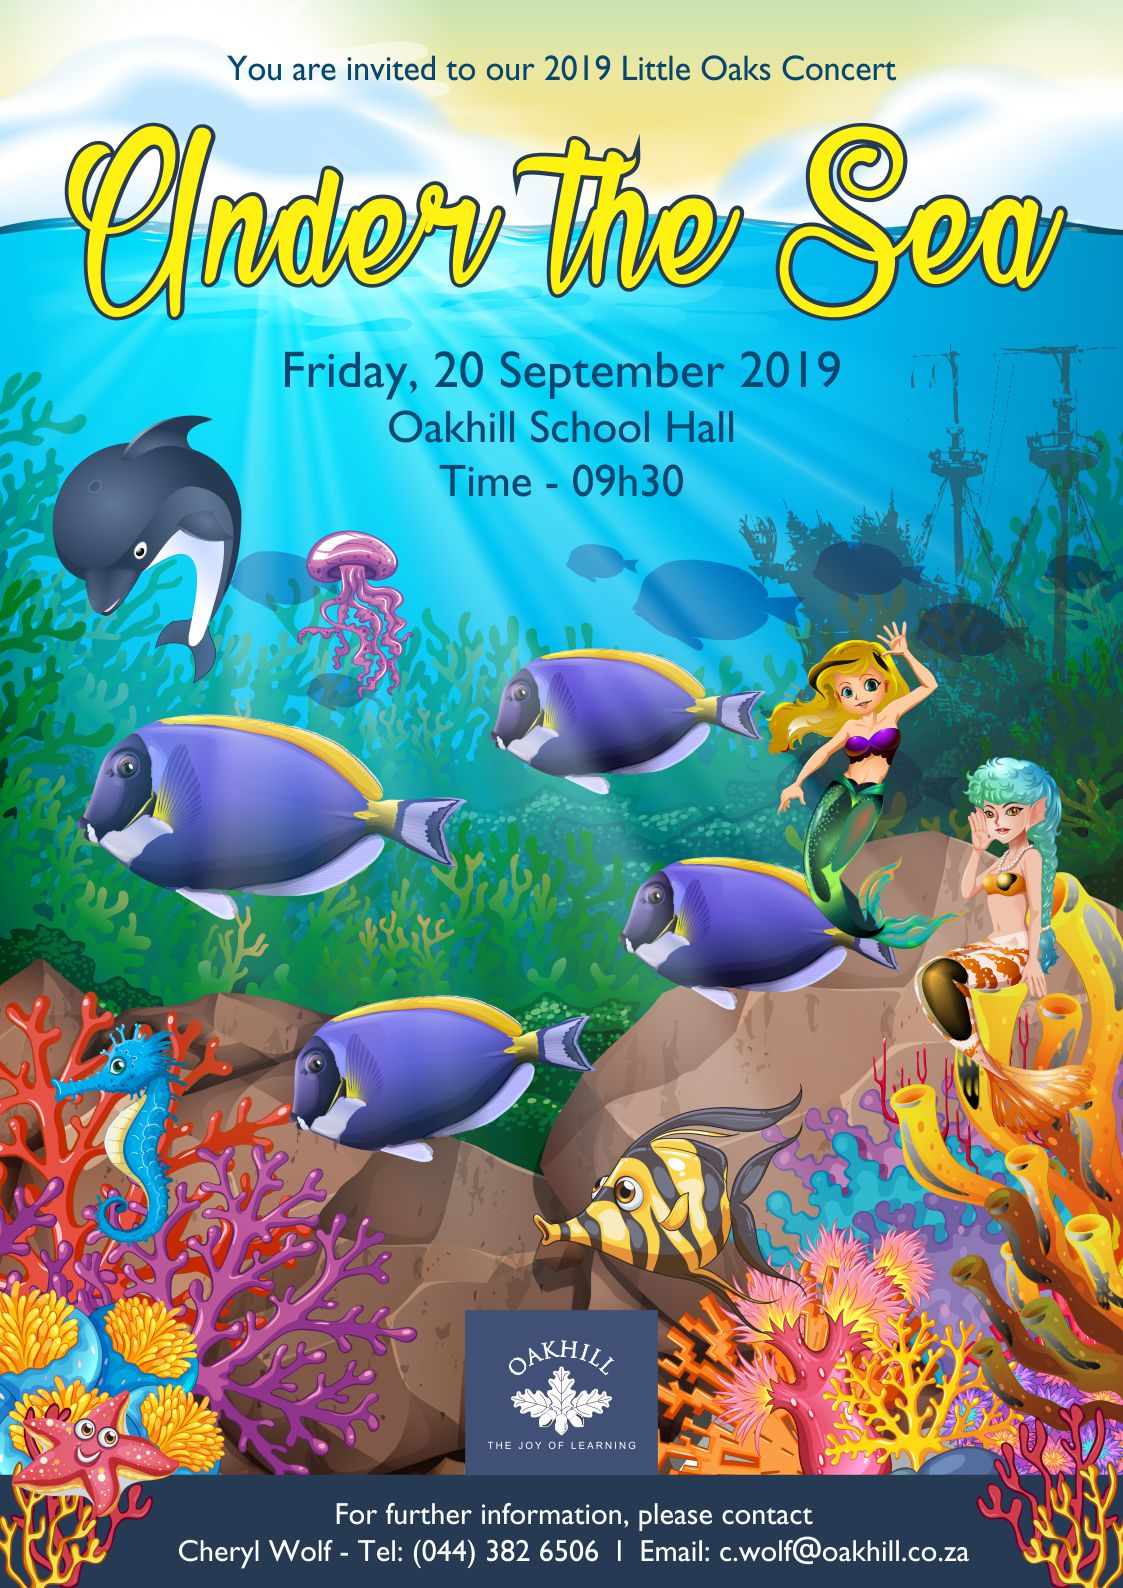 Little Oaks Concert - Under the Sea